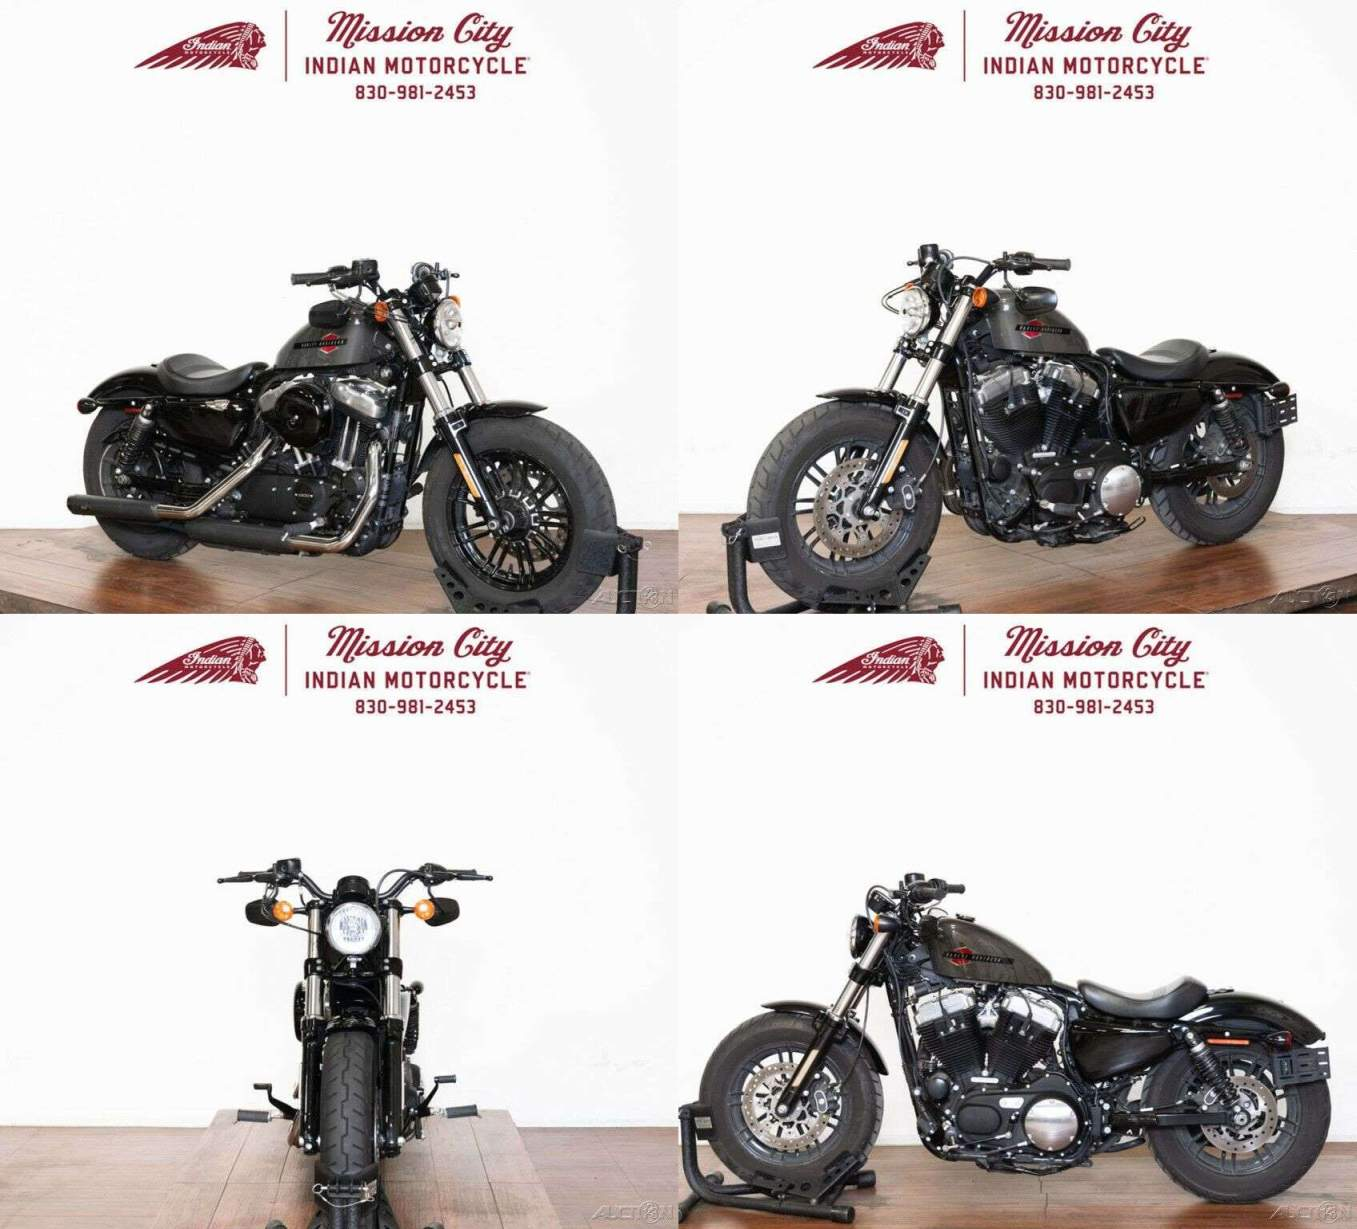 2019 Harley-Davidson Sportster XL 1200X - Forty-Eight Industrial Gray used for sale near me